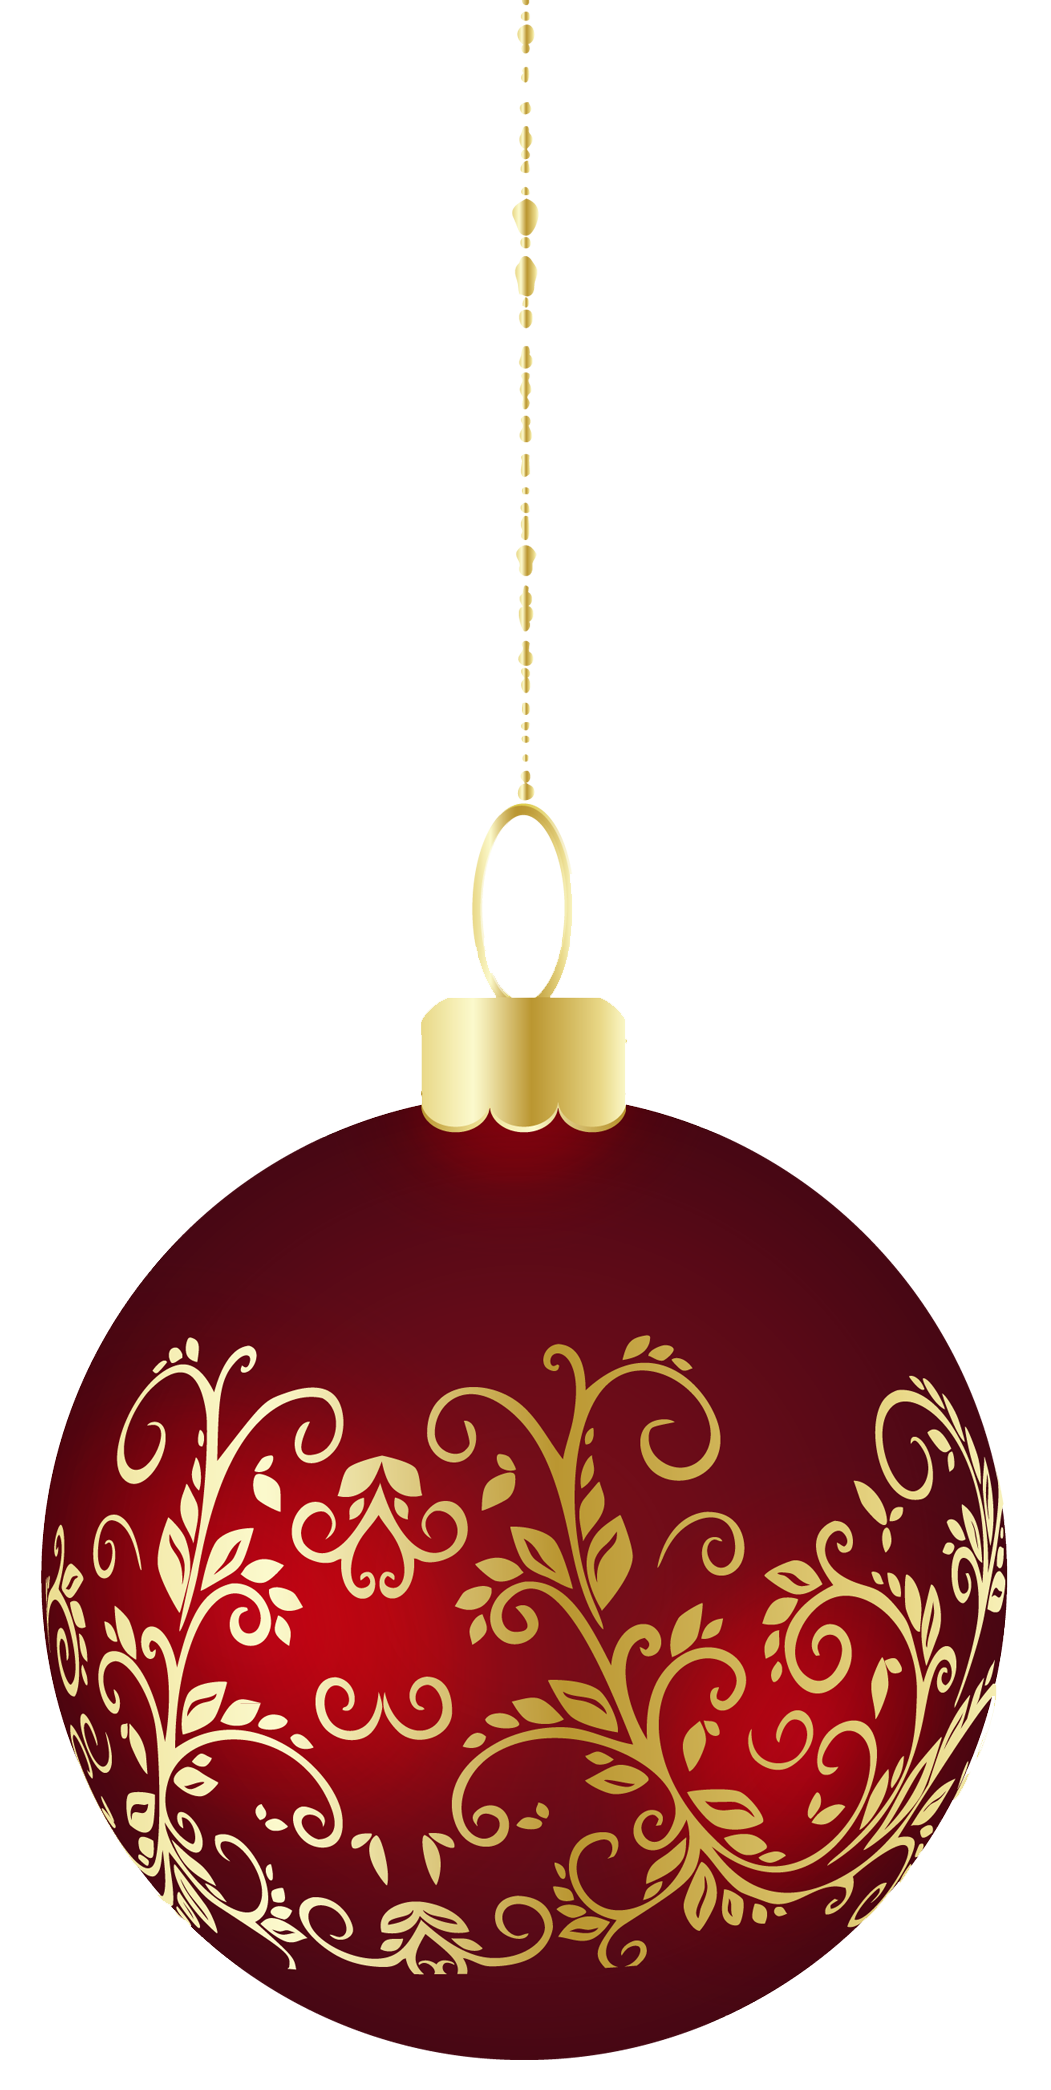 Large transparent christmas ball ornament png clipart for Hanging christmas decorations